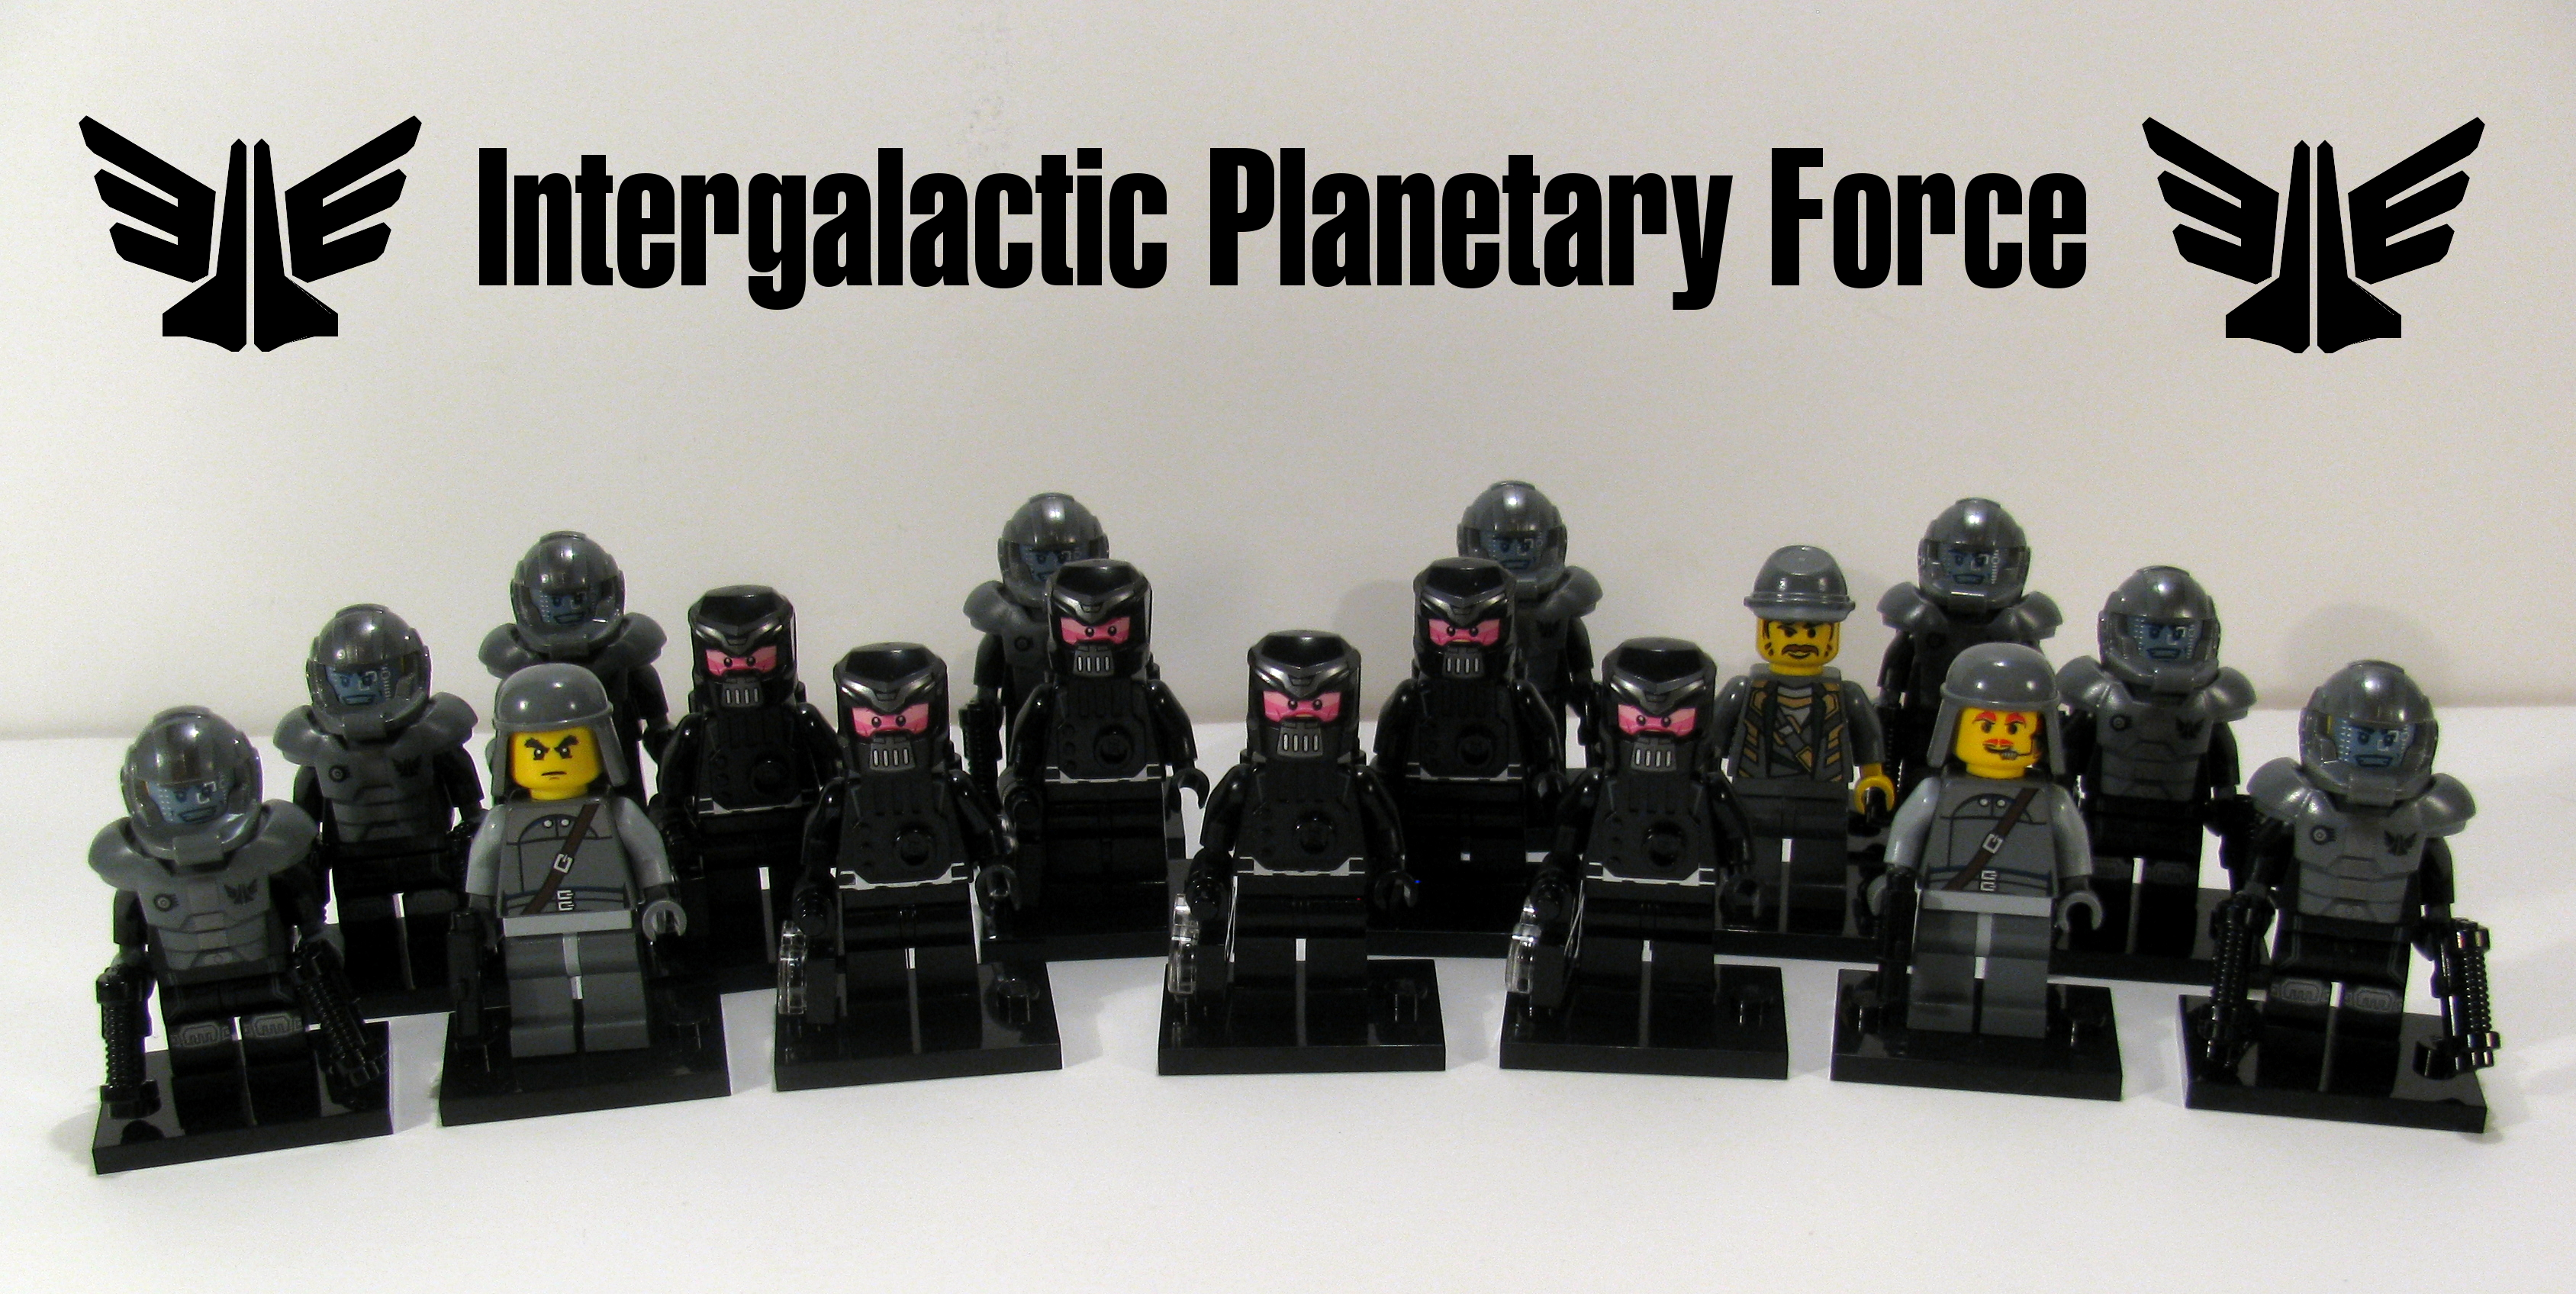 intergalactic_planetary_force.jpg